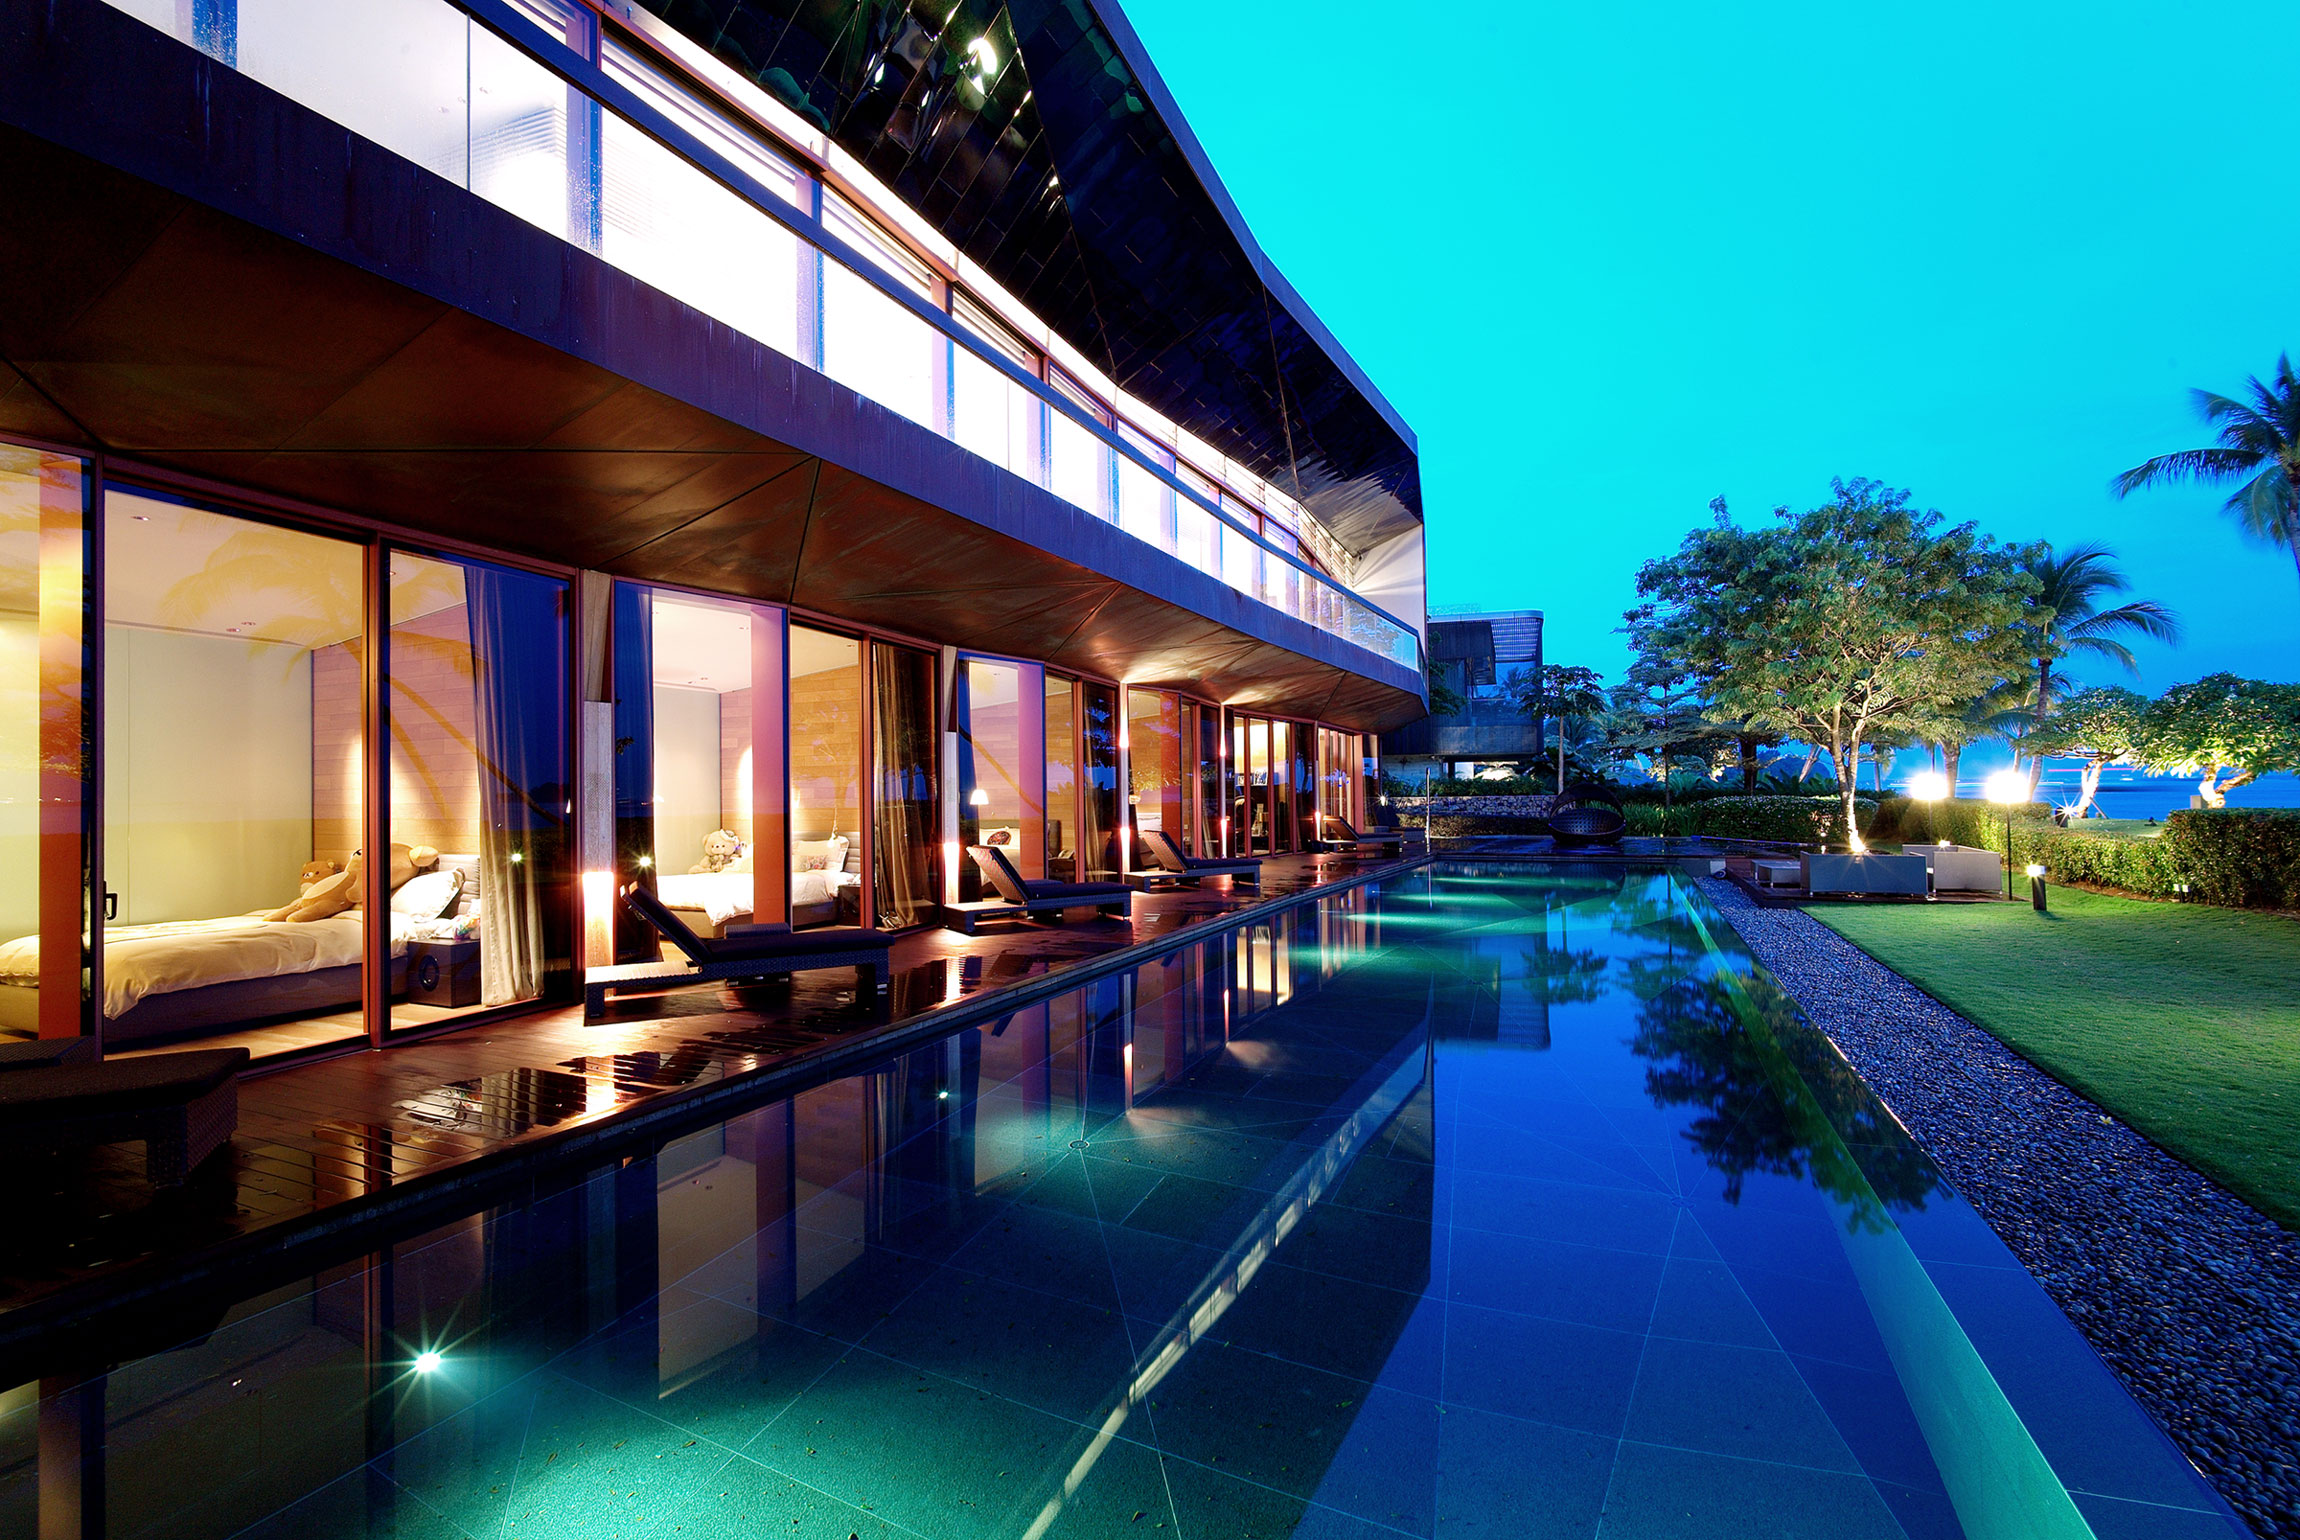 The Copper House, designed by award-winning architect Sonny Chan, is a one-of-a-kind waterfront estate on the coveted island of Sentosa, just off the coast of Singapore.